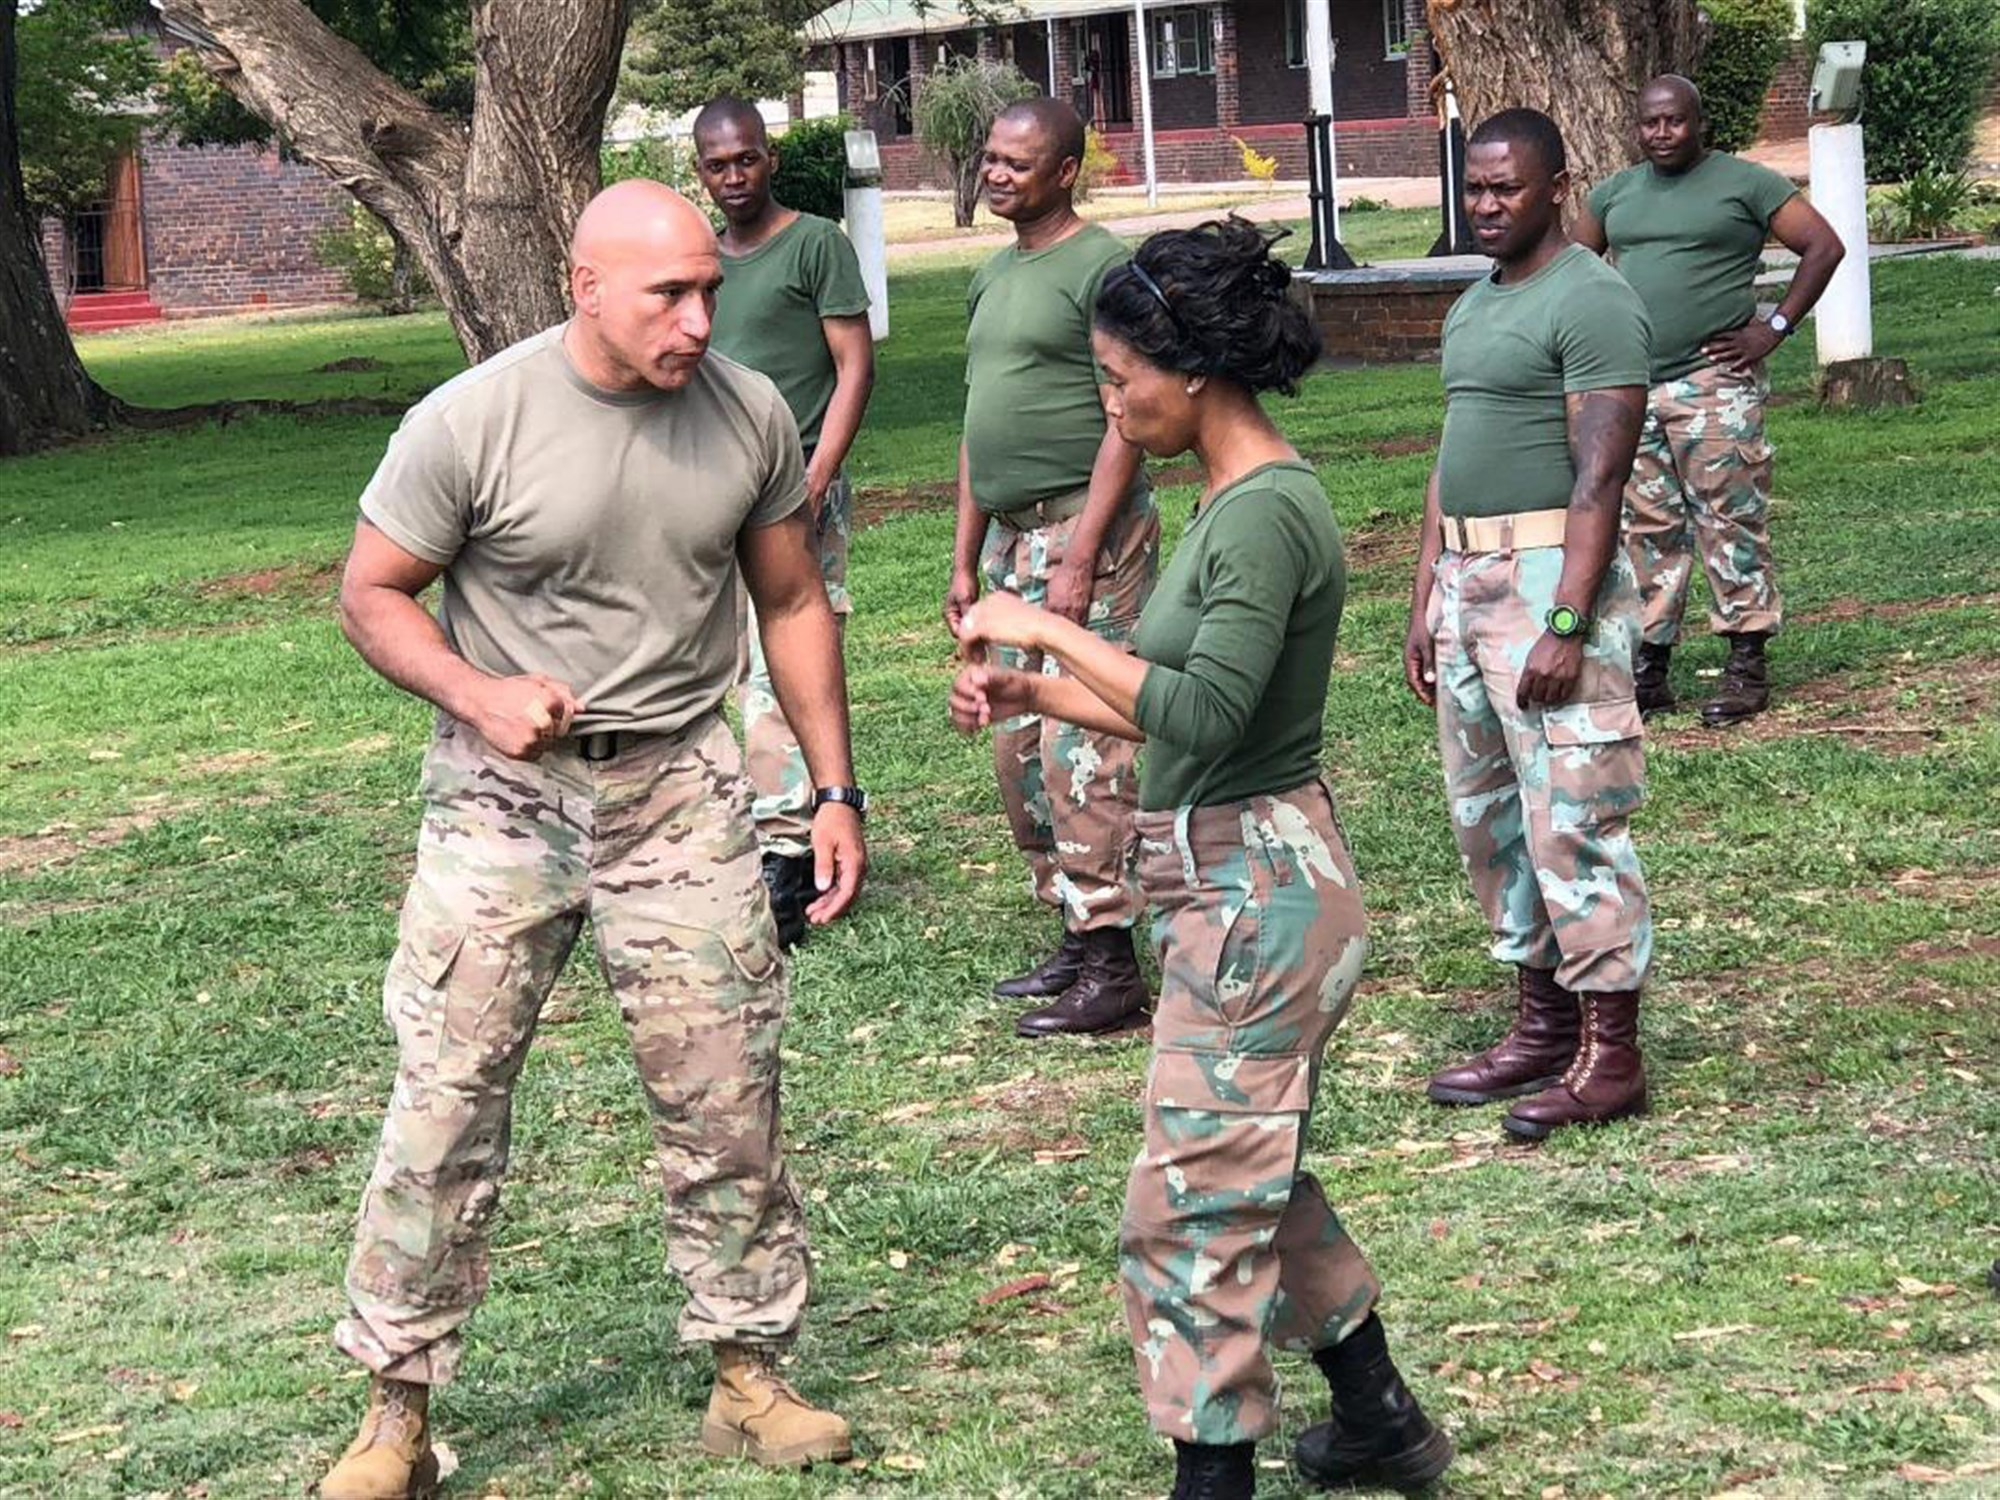 New York Army National Guard Master Sgt. Luis Barsallo, a certified hand-to-hand tactics instructor, demonstrates a move to members of the South African National Defense Forces during an  exchange visit on October 10, 2018. Soldiers from the New York Army National Guard took  part in an exchange program at the South African National Defense Forces Military Police School during an exchange visit there on Oct. 10-11, 2018. Twelve New York Army National Guard experts in civil support operations, military police, law enforcement, and self-defense took part in the exchange visit. ( U.S. Army National Guard photo by Sgt. Kristin Ross)